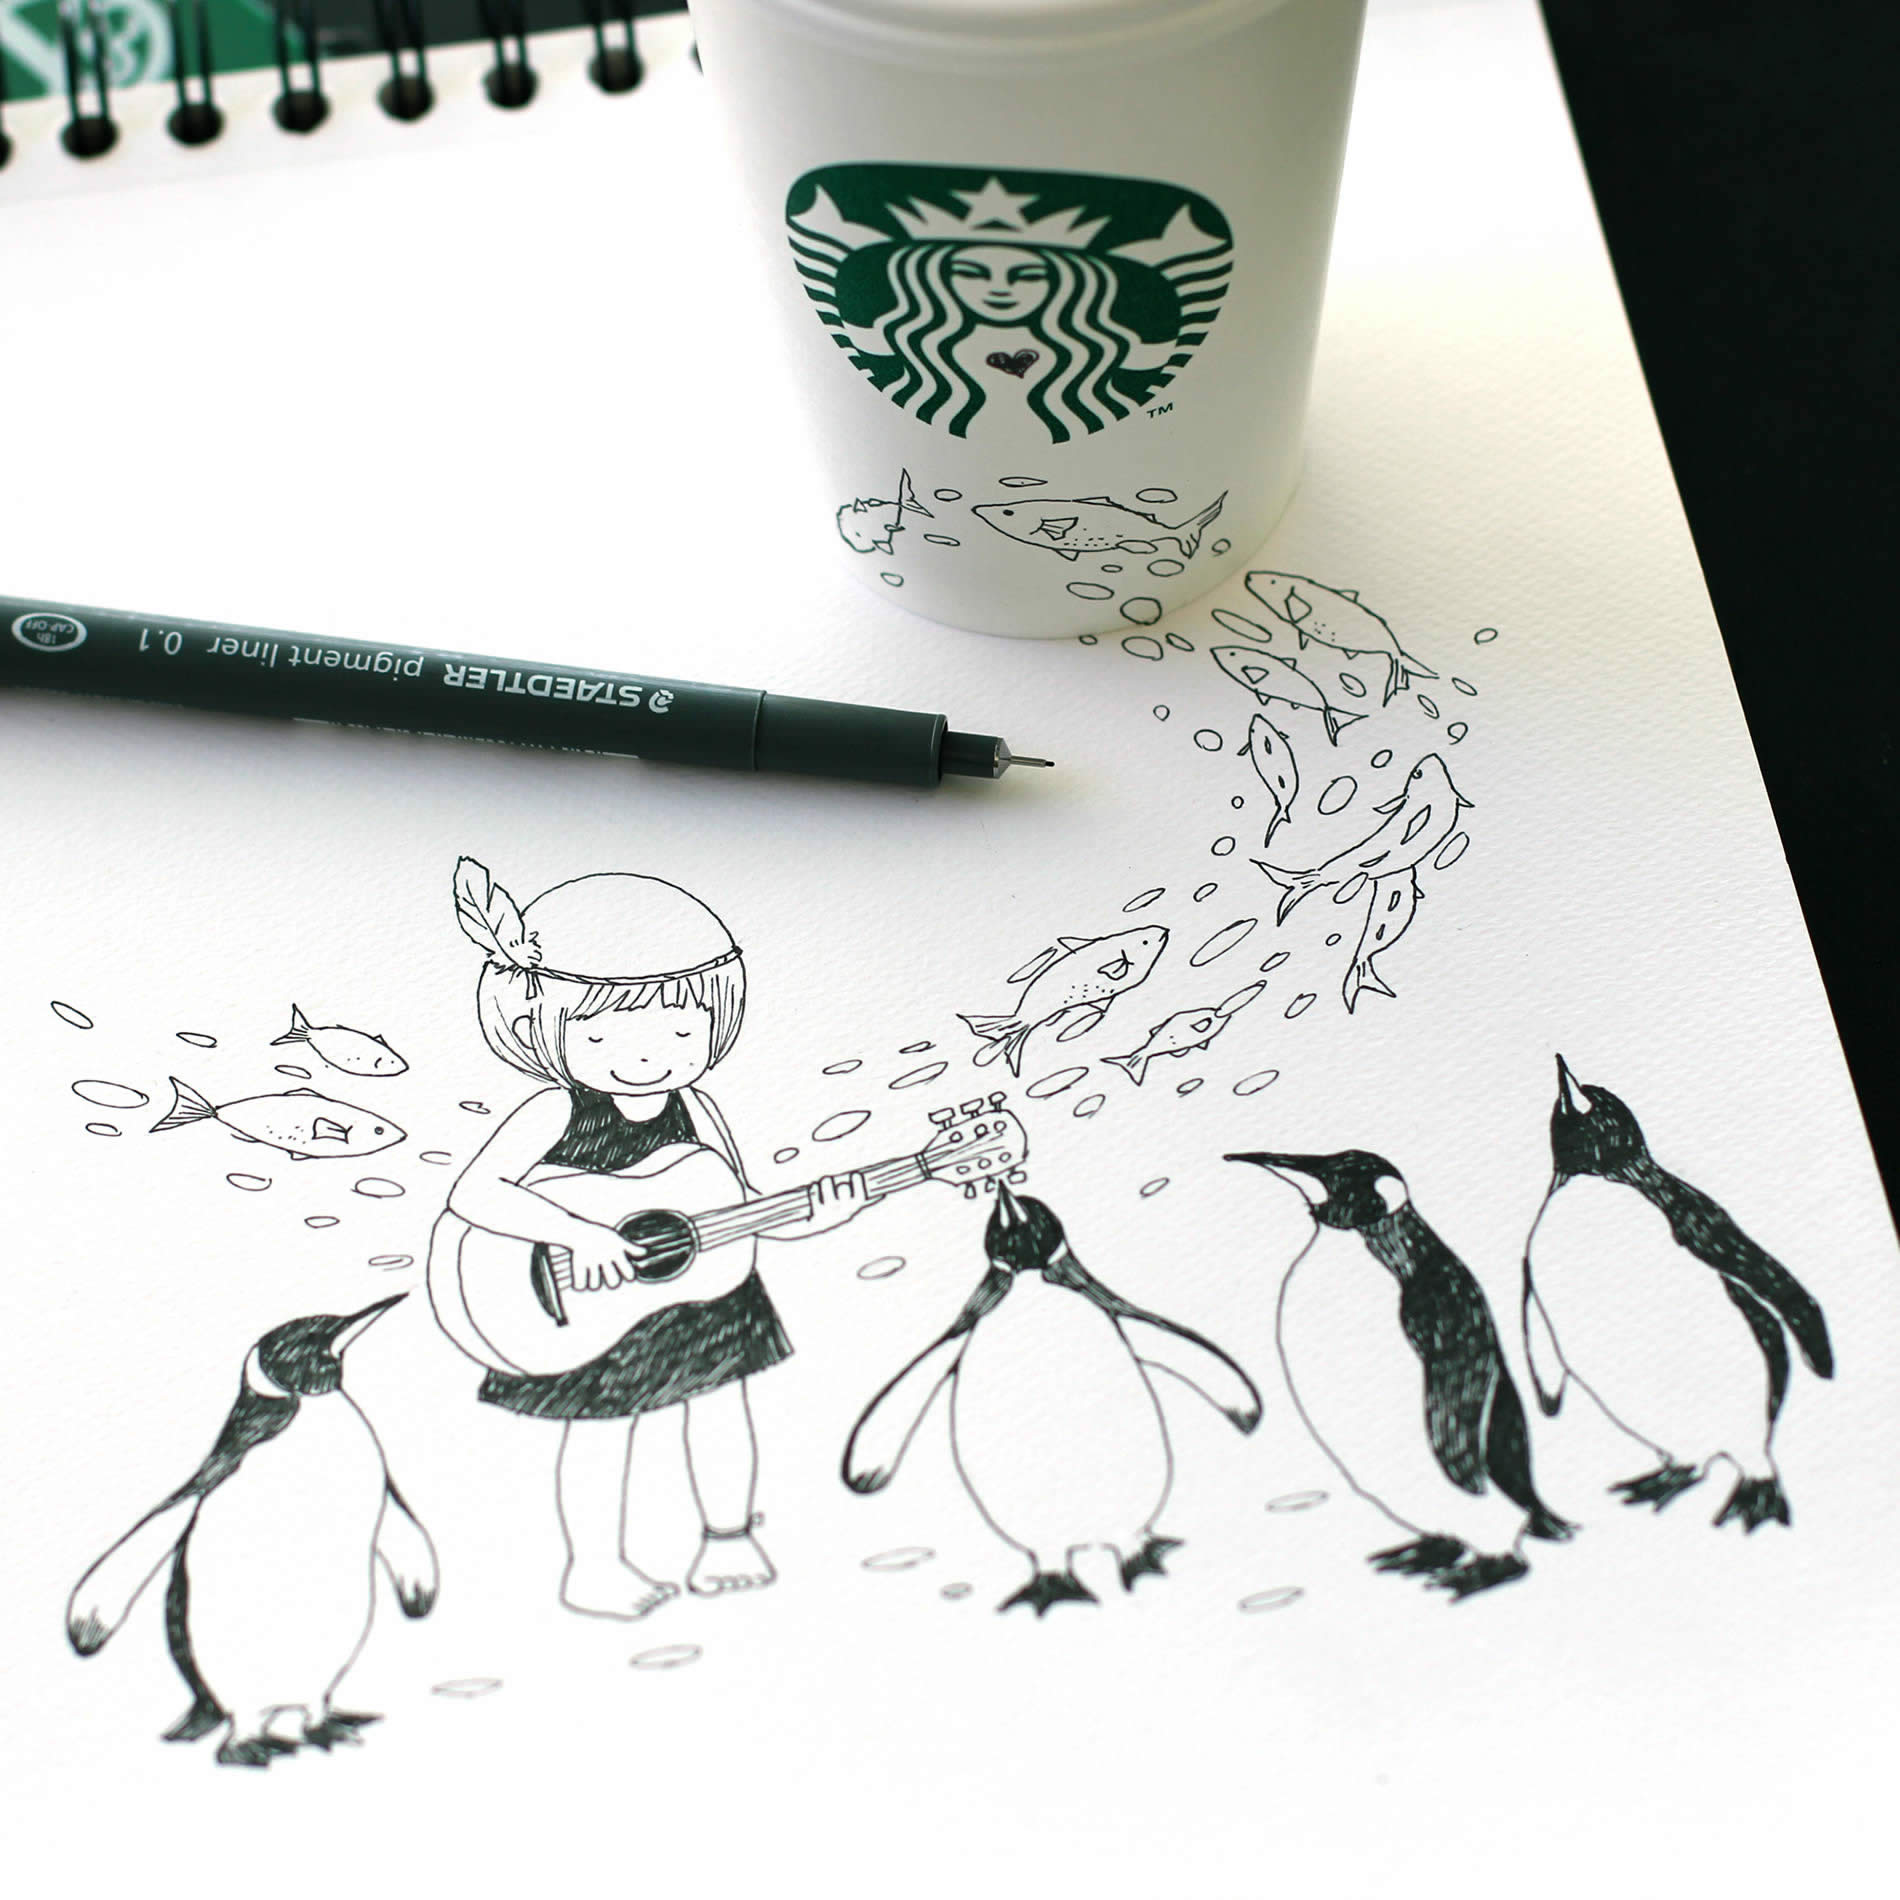 1900x1900 Tomoko Shintani's New Drawings On Starbucks Cups Scene360